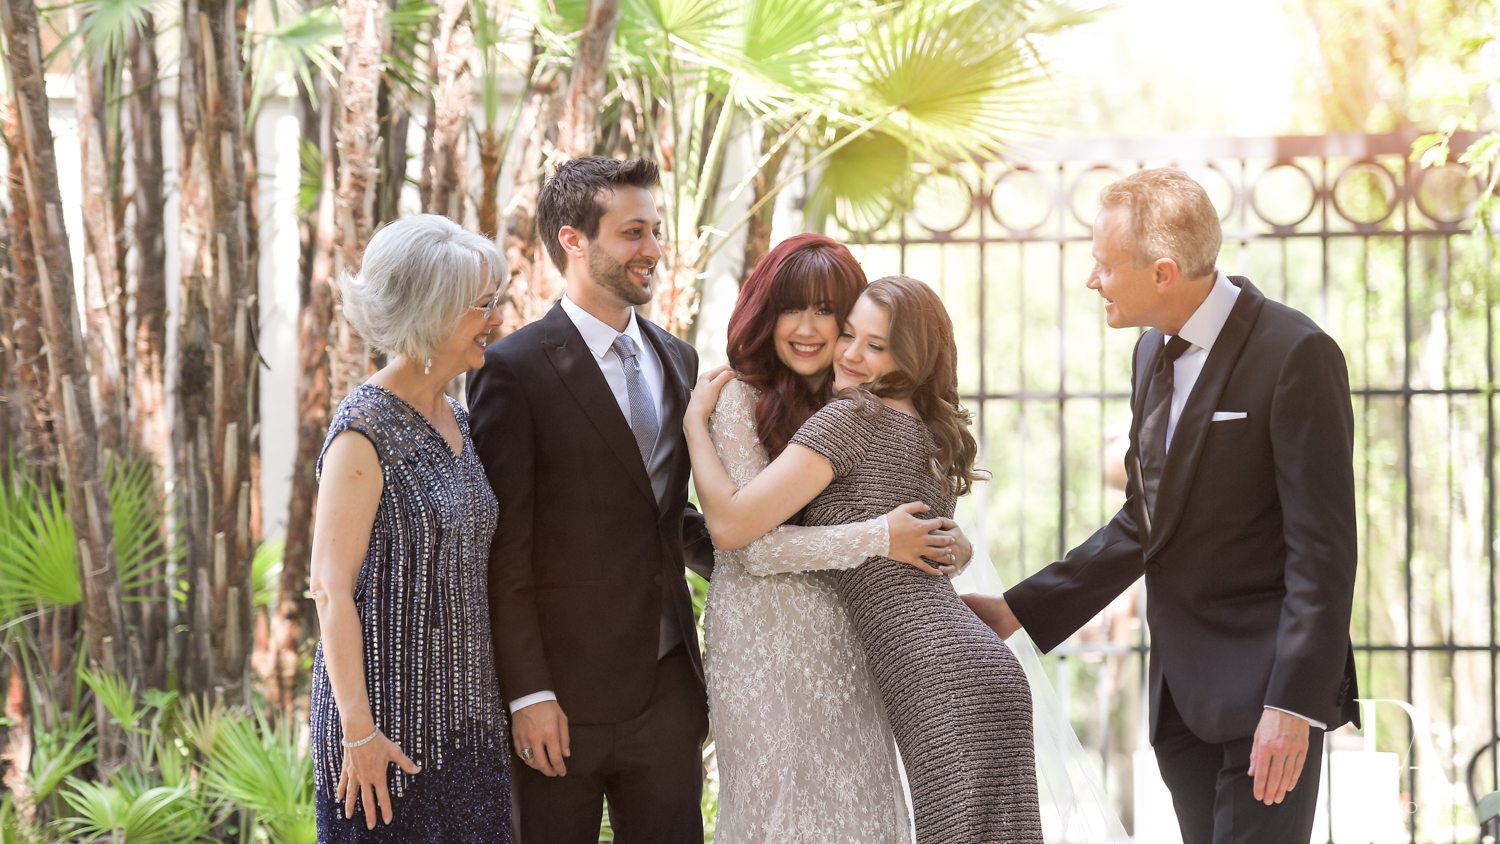 fun family pics at Vintage Garden Wedding at Flagler Museum Palm Beach by Domino Arts Photography